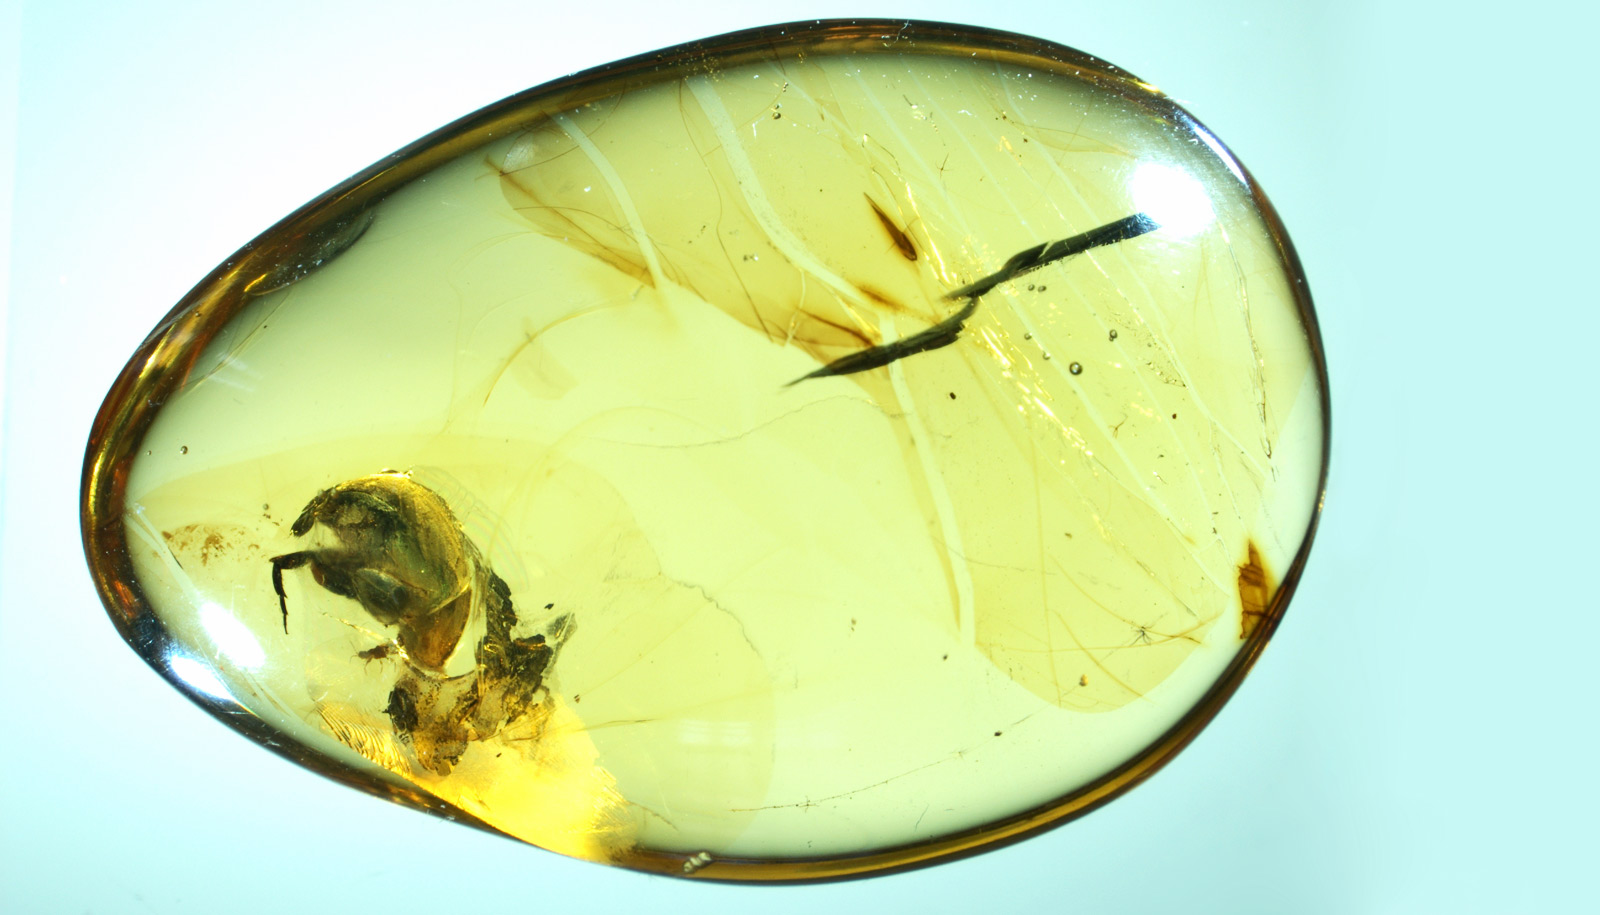 Beetle in amber pollinated flowers 99M years ago